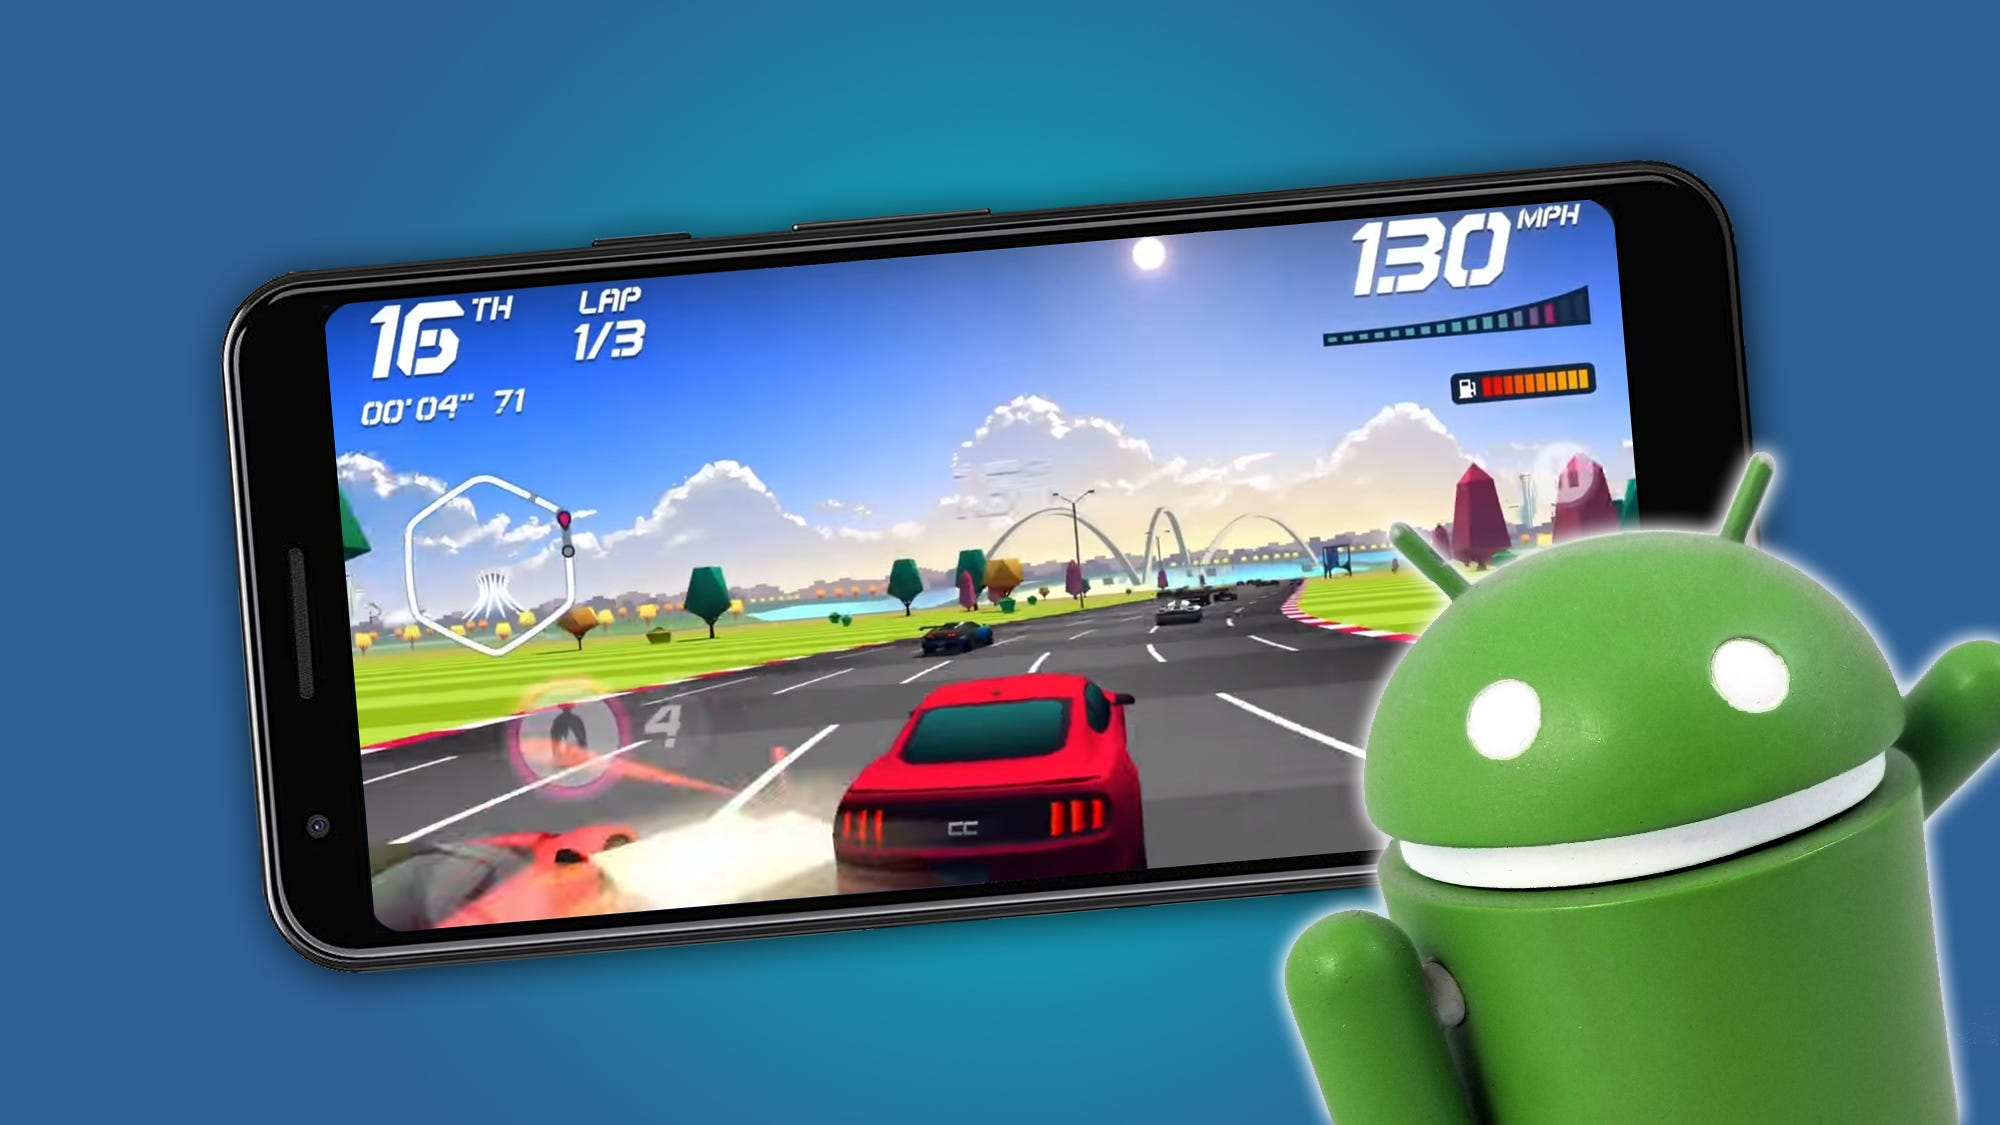 A racing game being played on a phone.